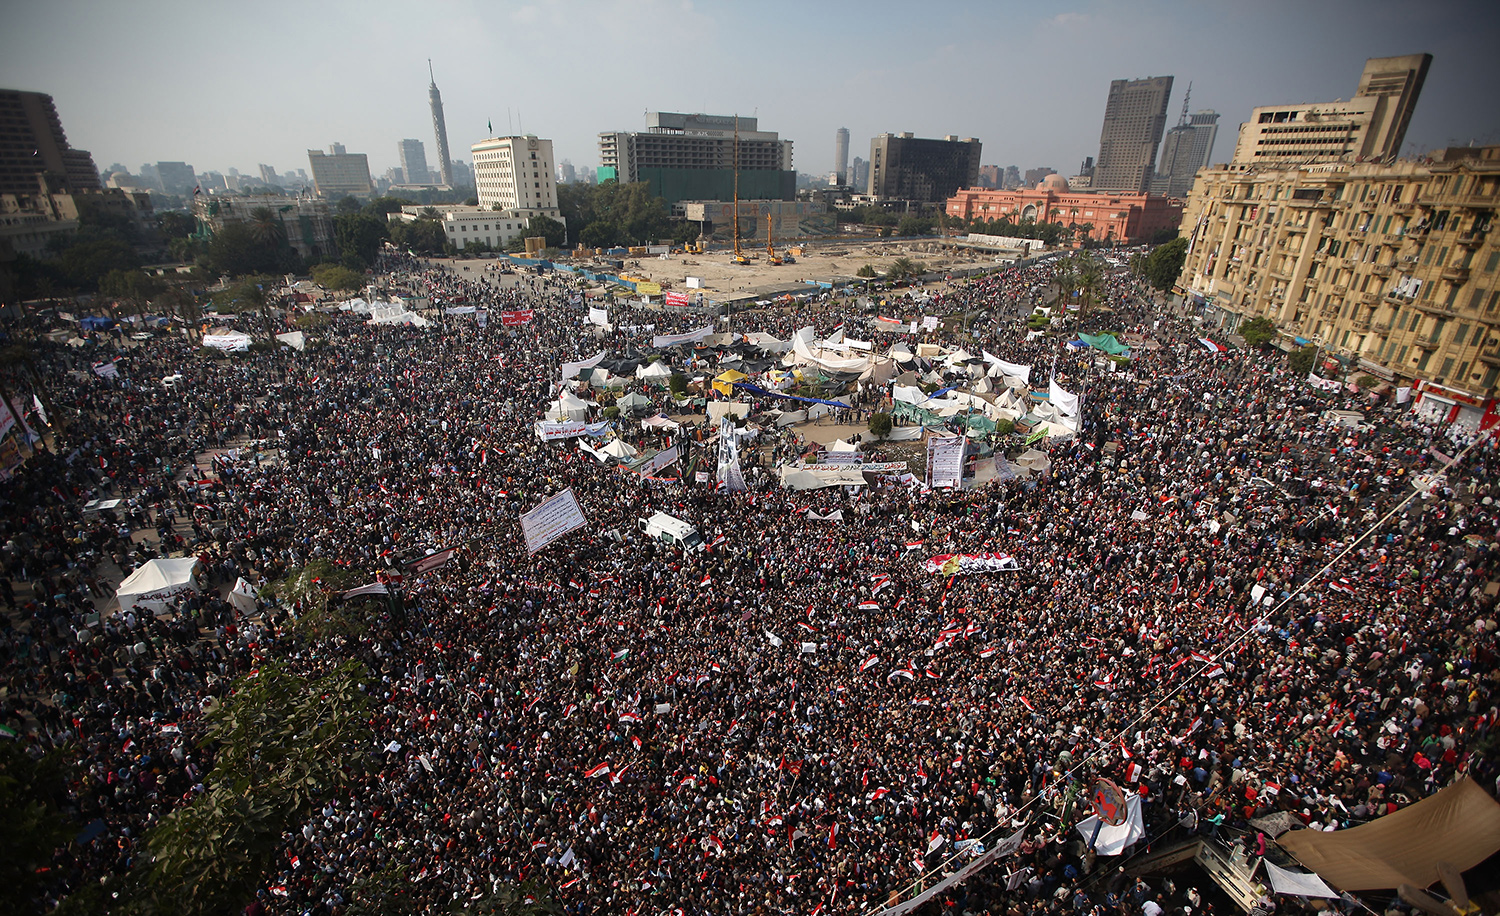 Protestors gathering on November 25, 2011 in Cairo, Egypt in one of the early protests of the Arab Spring. Peter Macdiarmid/Getty Images.